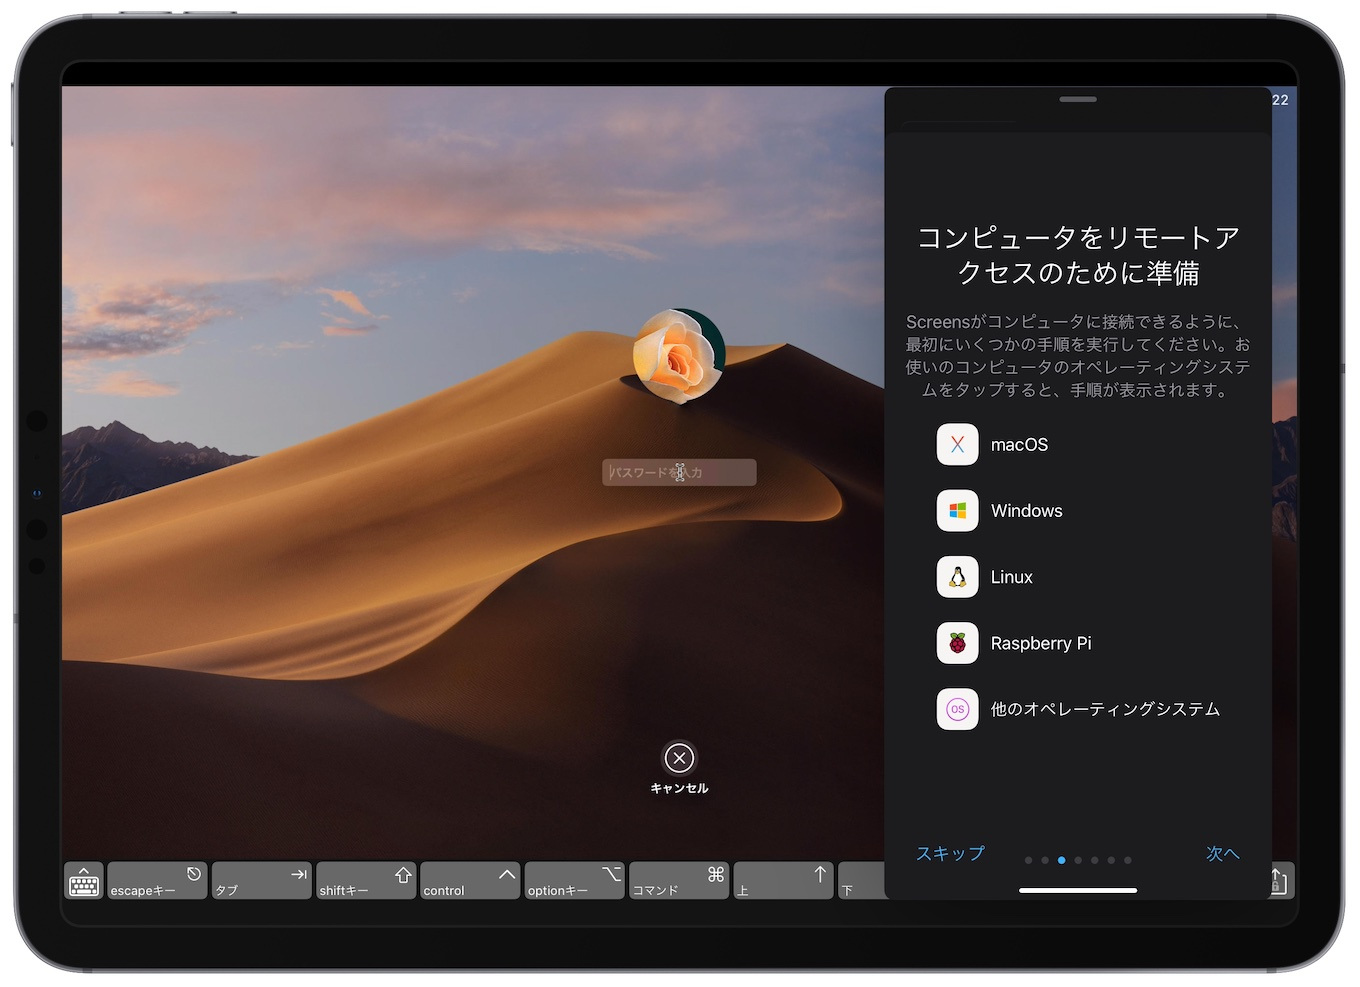 Screens for iPad v4.9